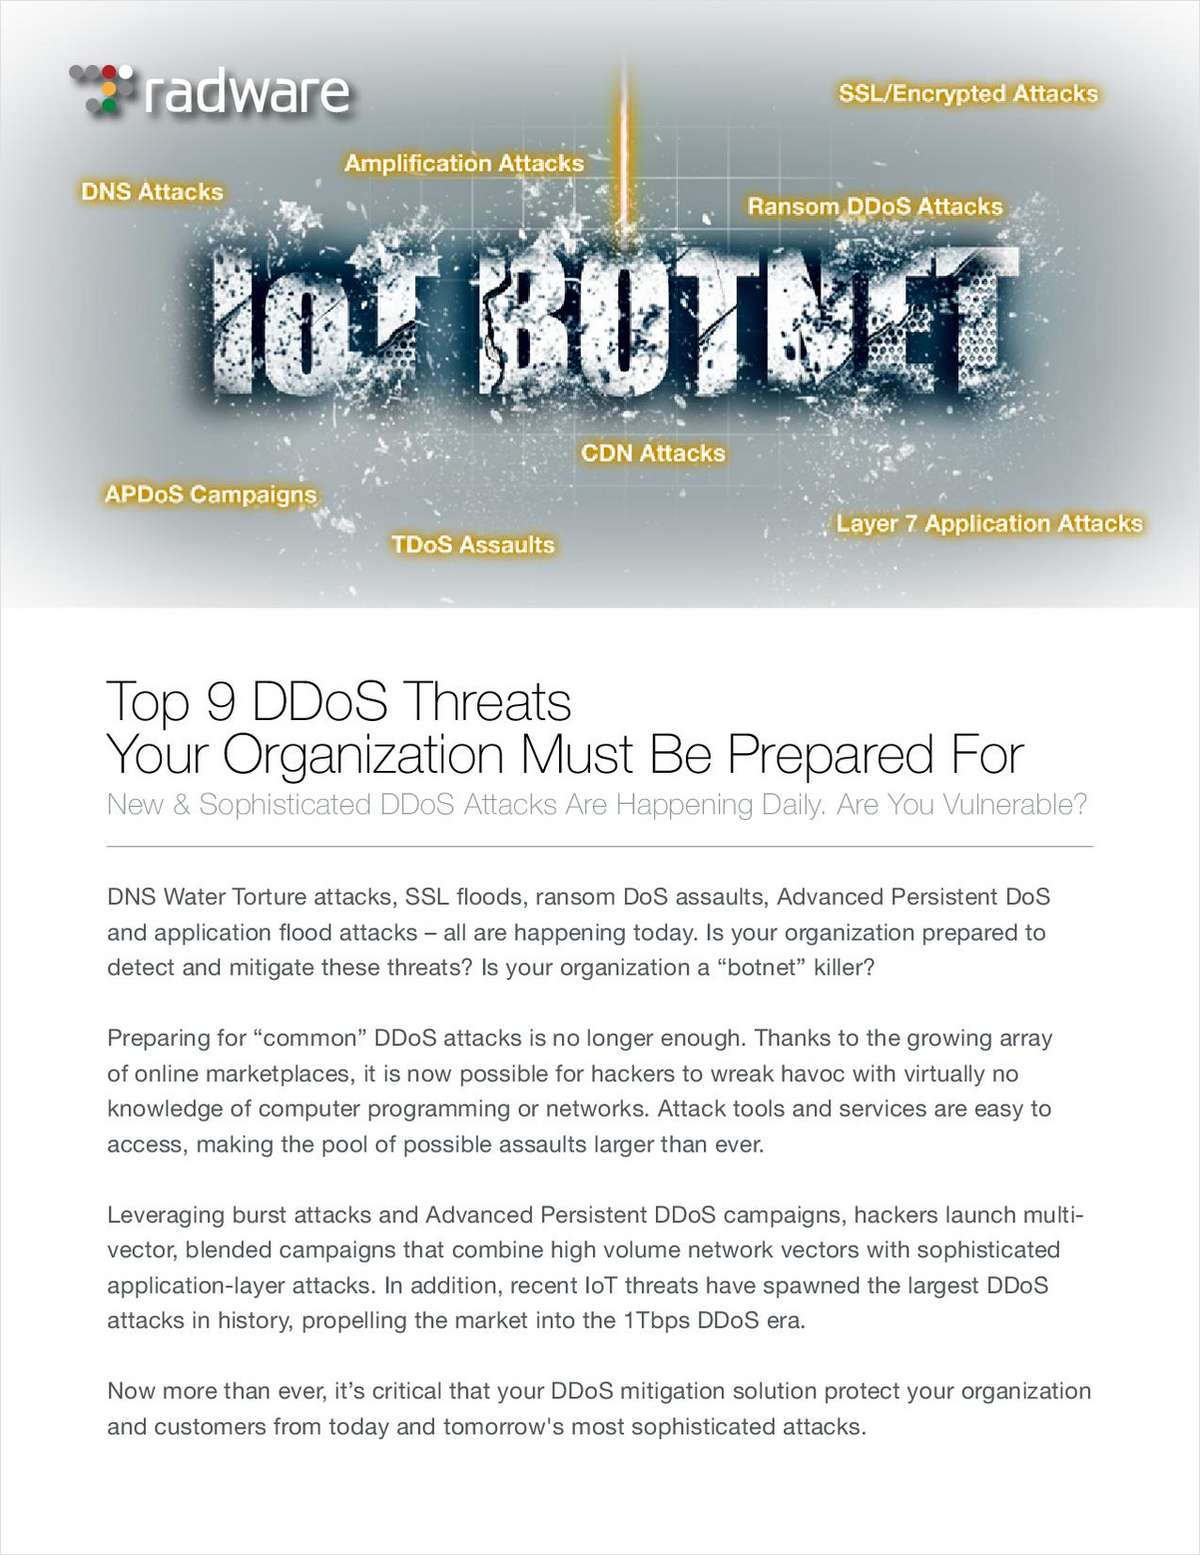 Top 9 DDoS Threats Your Organization Must Be Prepared For